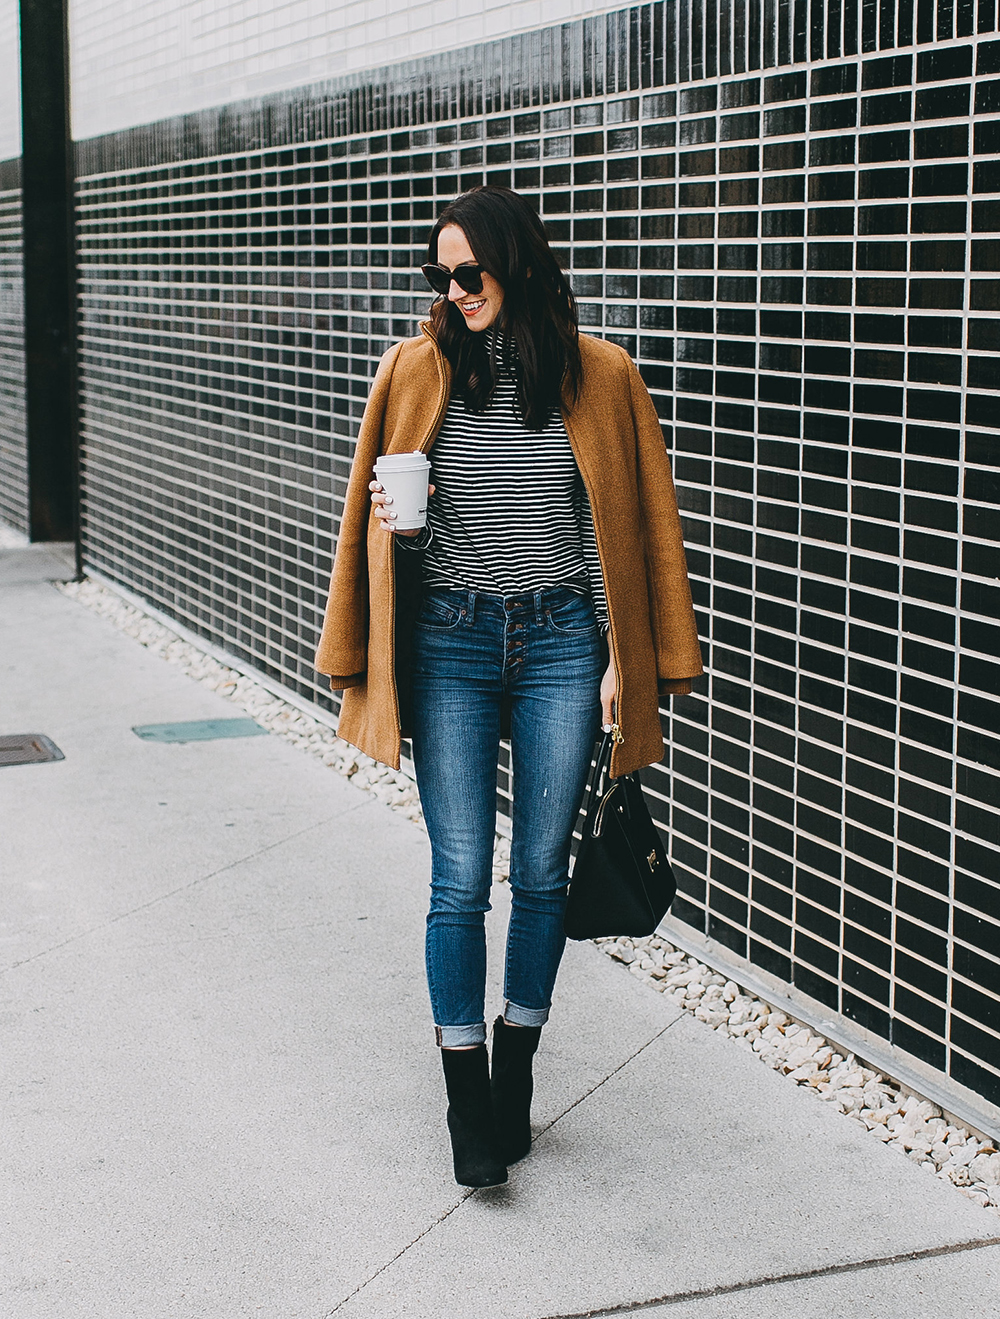 livvyland-blog-olivia-watson-austin-texas-fashion-blogger-j-crew-camel-winter-coat-striped-turtleneck-mid-calf-ankle-booties-12